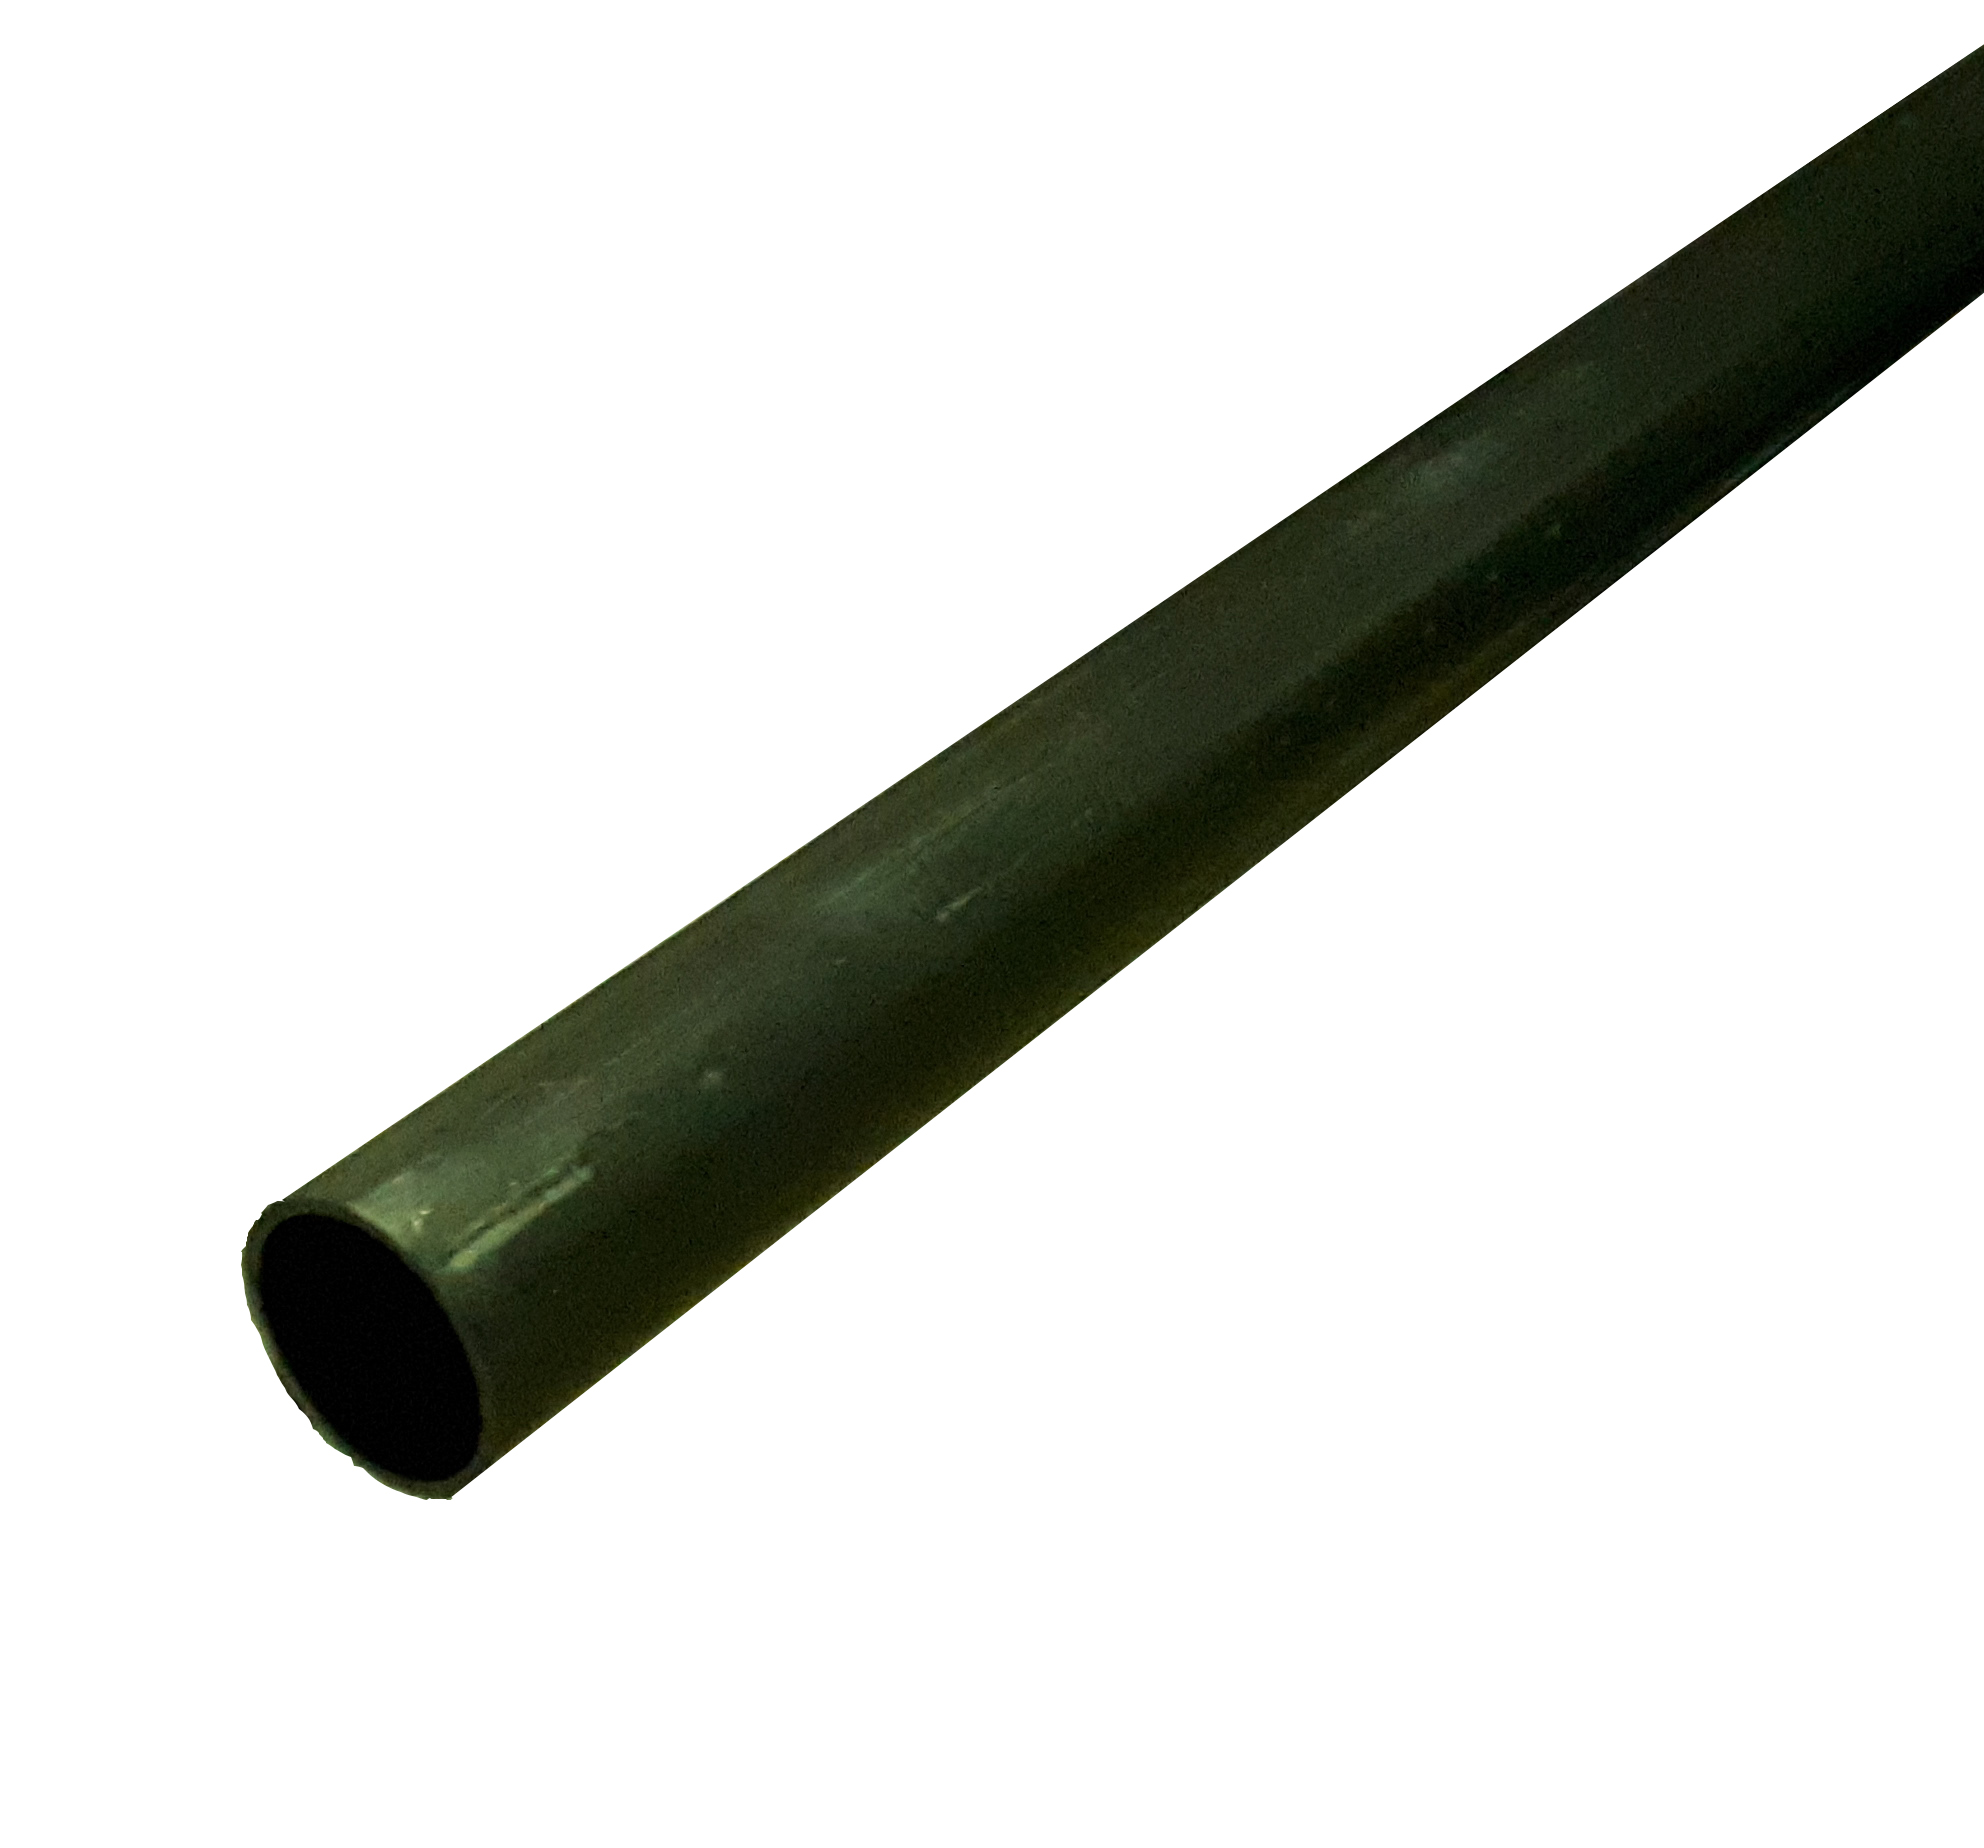 FLOPLAST WS01BL 32MM ABS SOLVENT WELD WASTE PIPE - BLACK